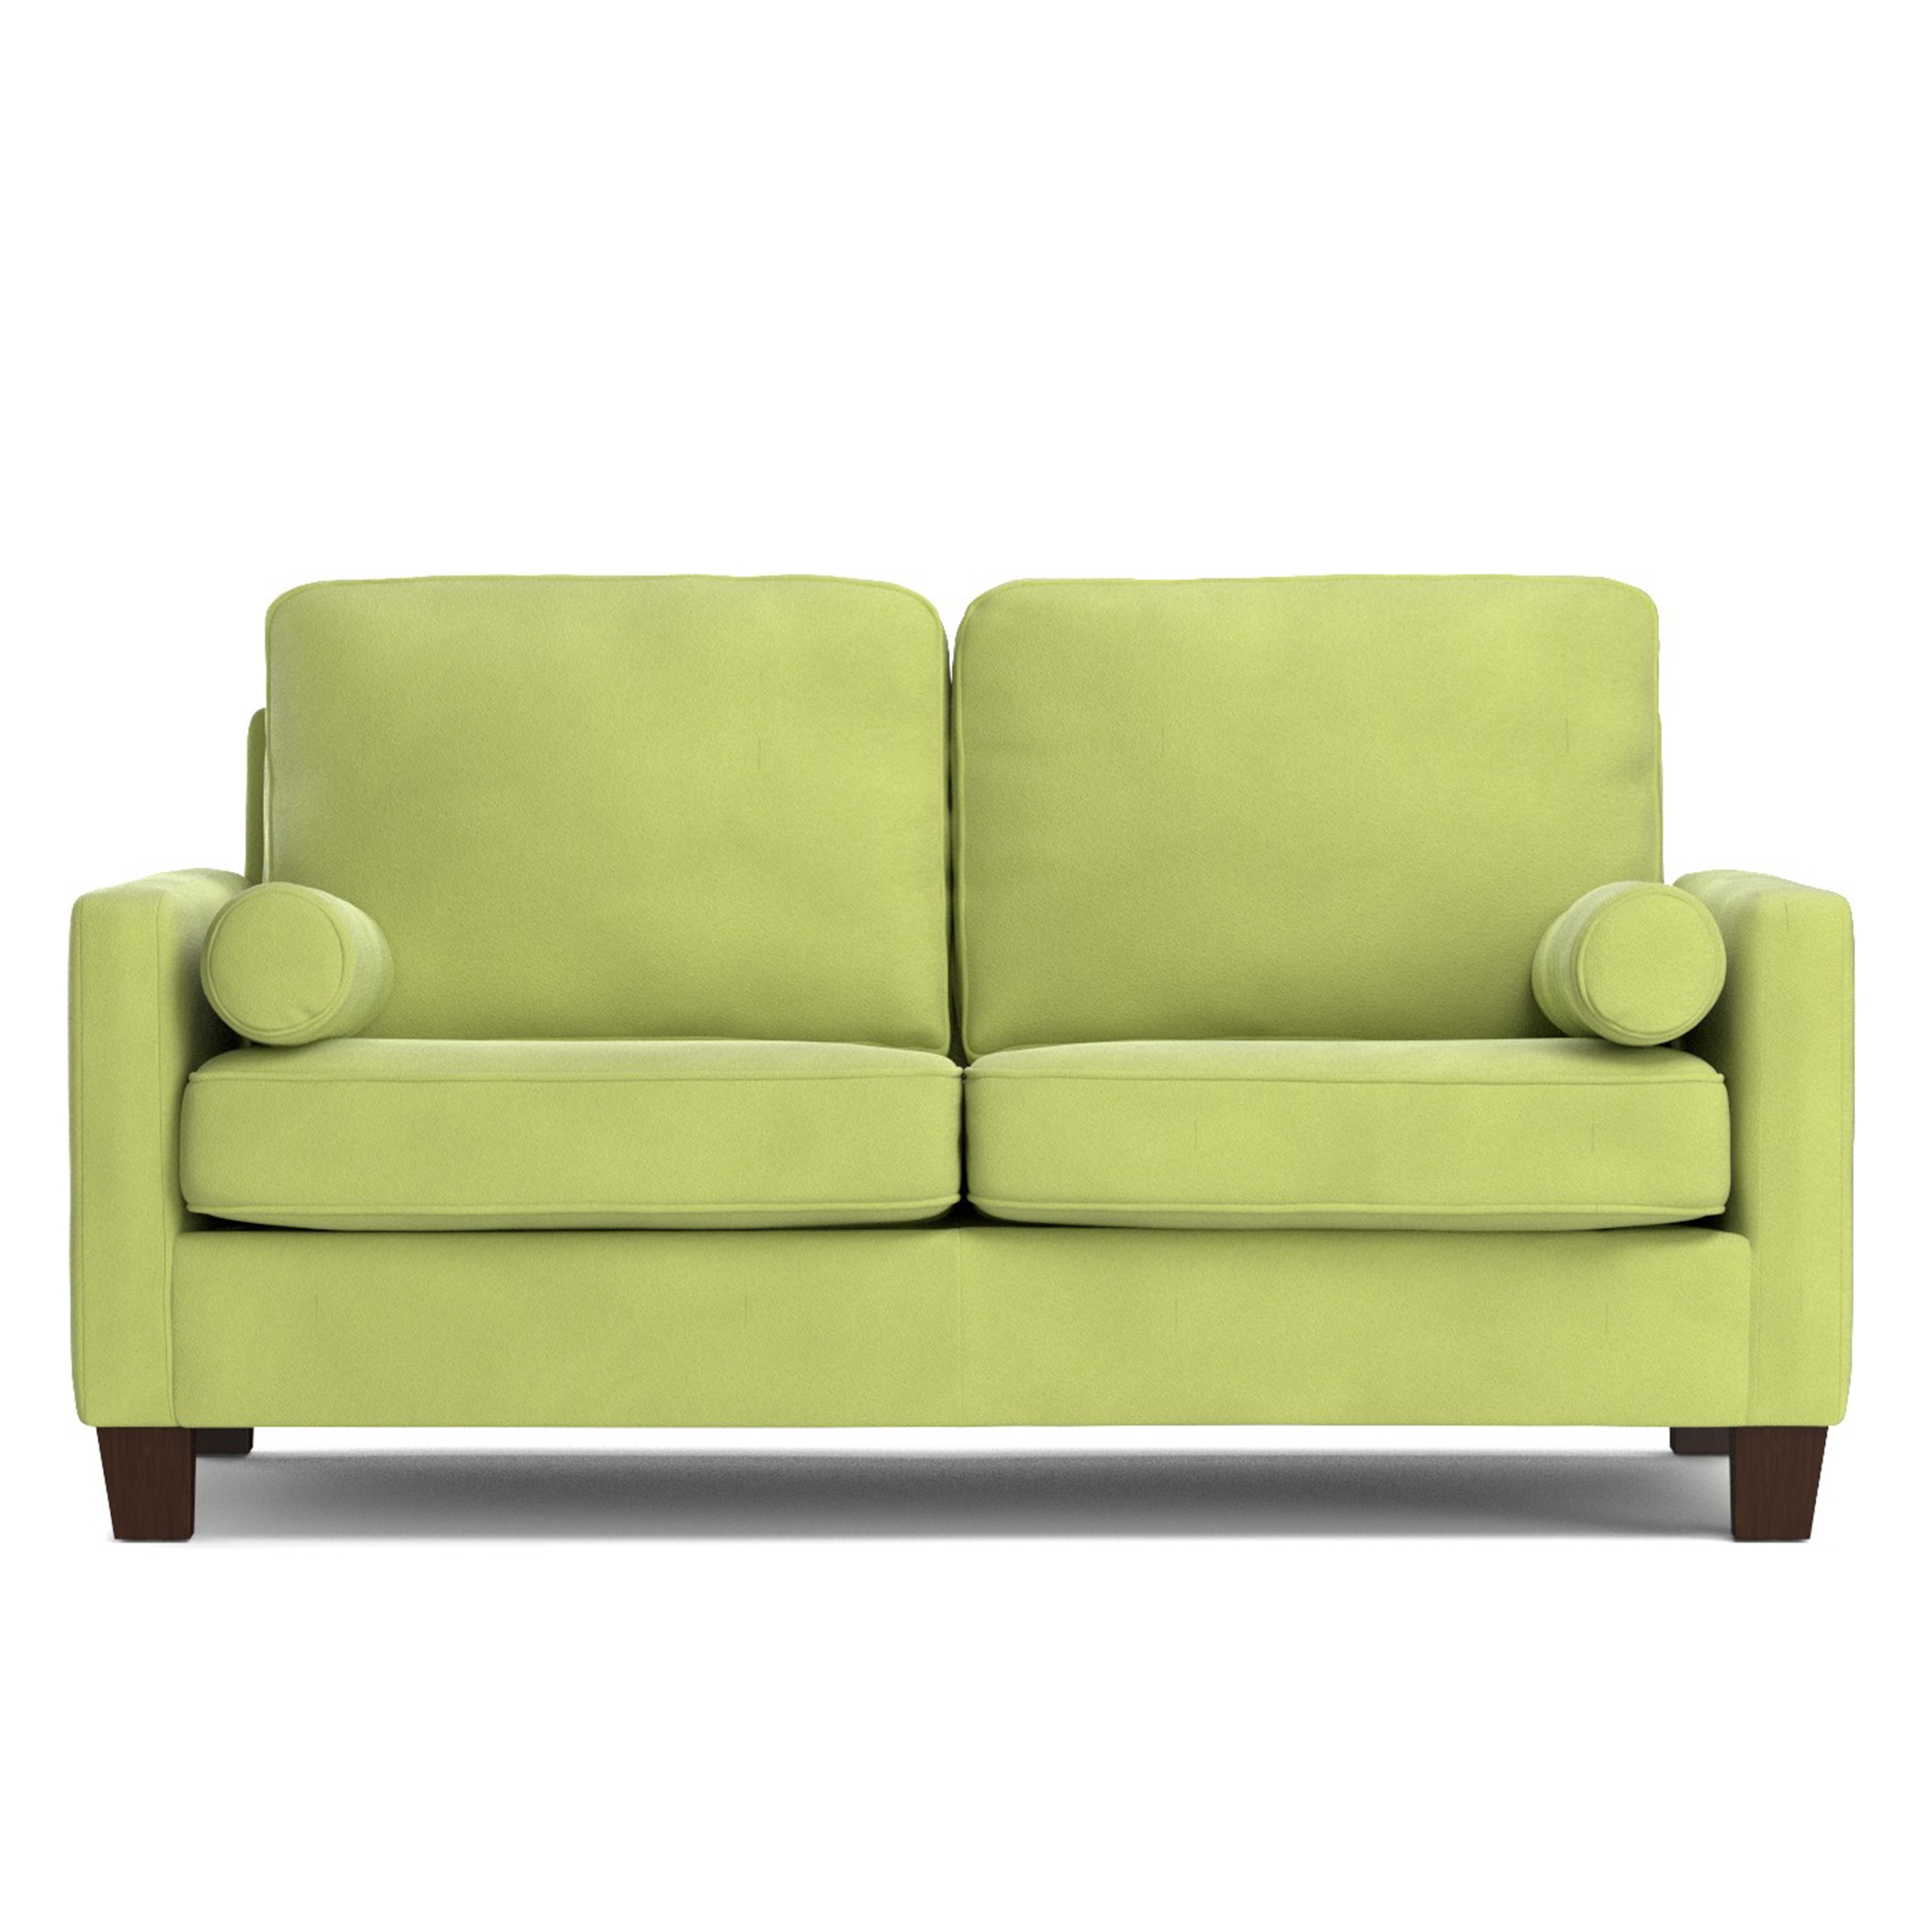 loveseats room furniture couches velvet market world sofas and liliana do living floral xxx green loveseat category